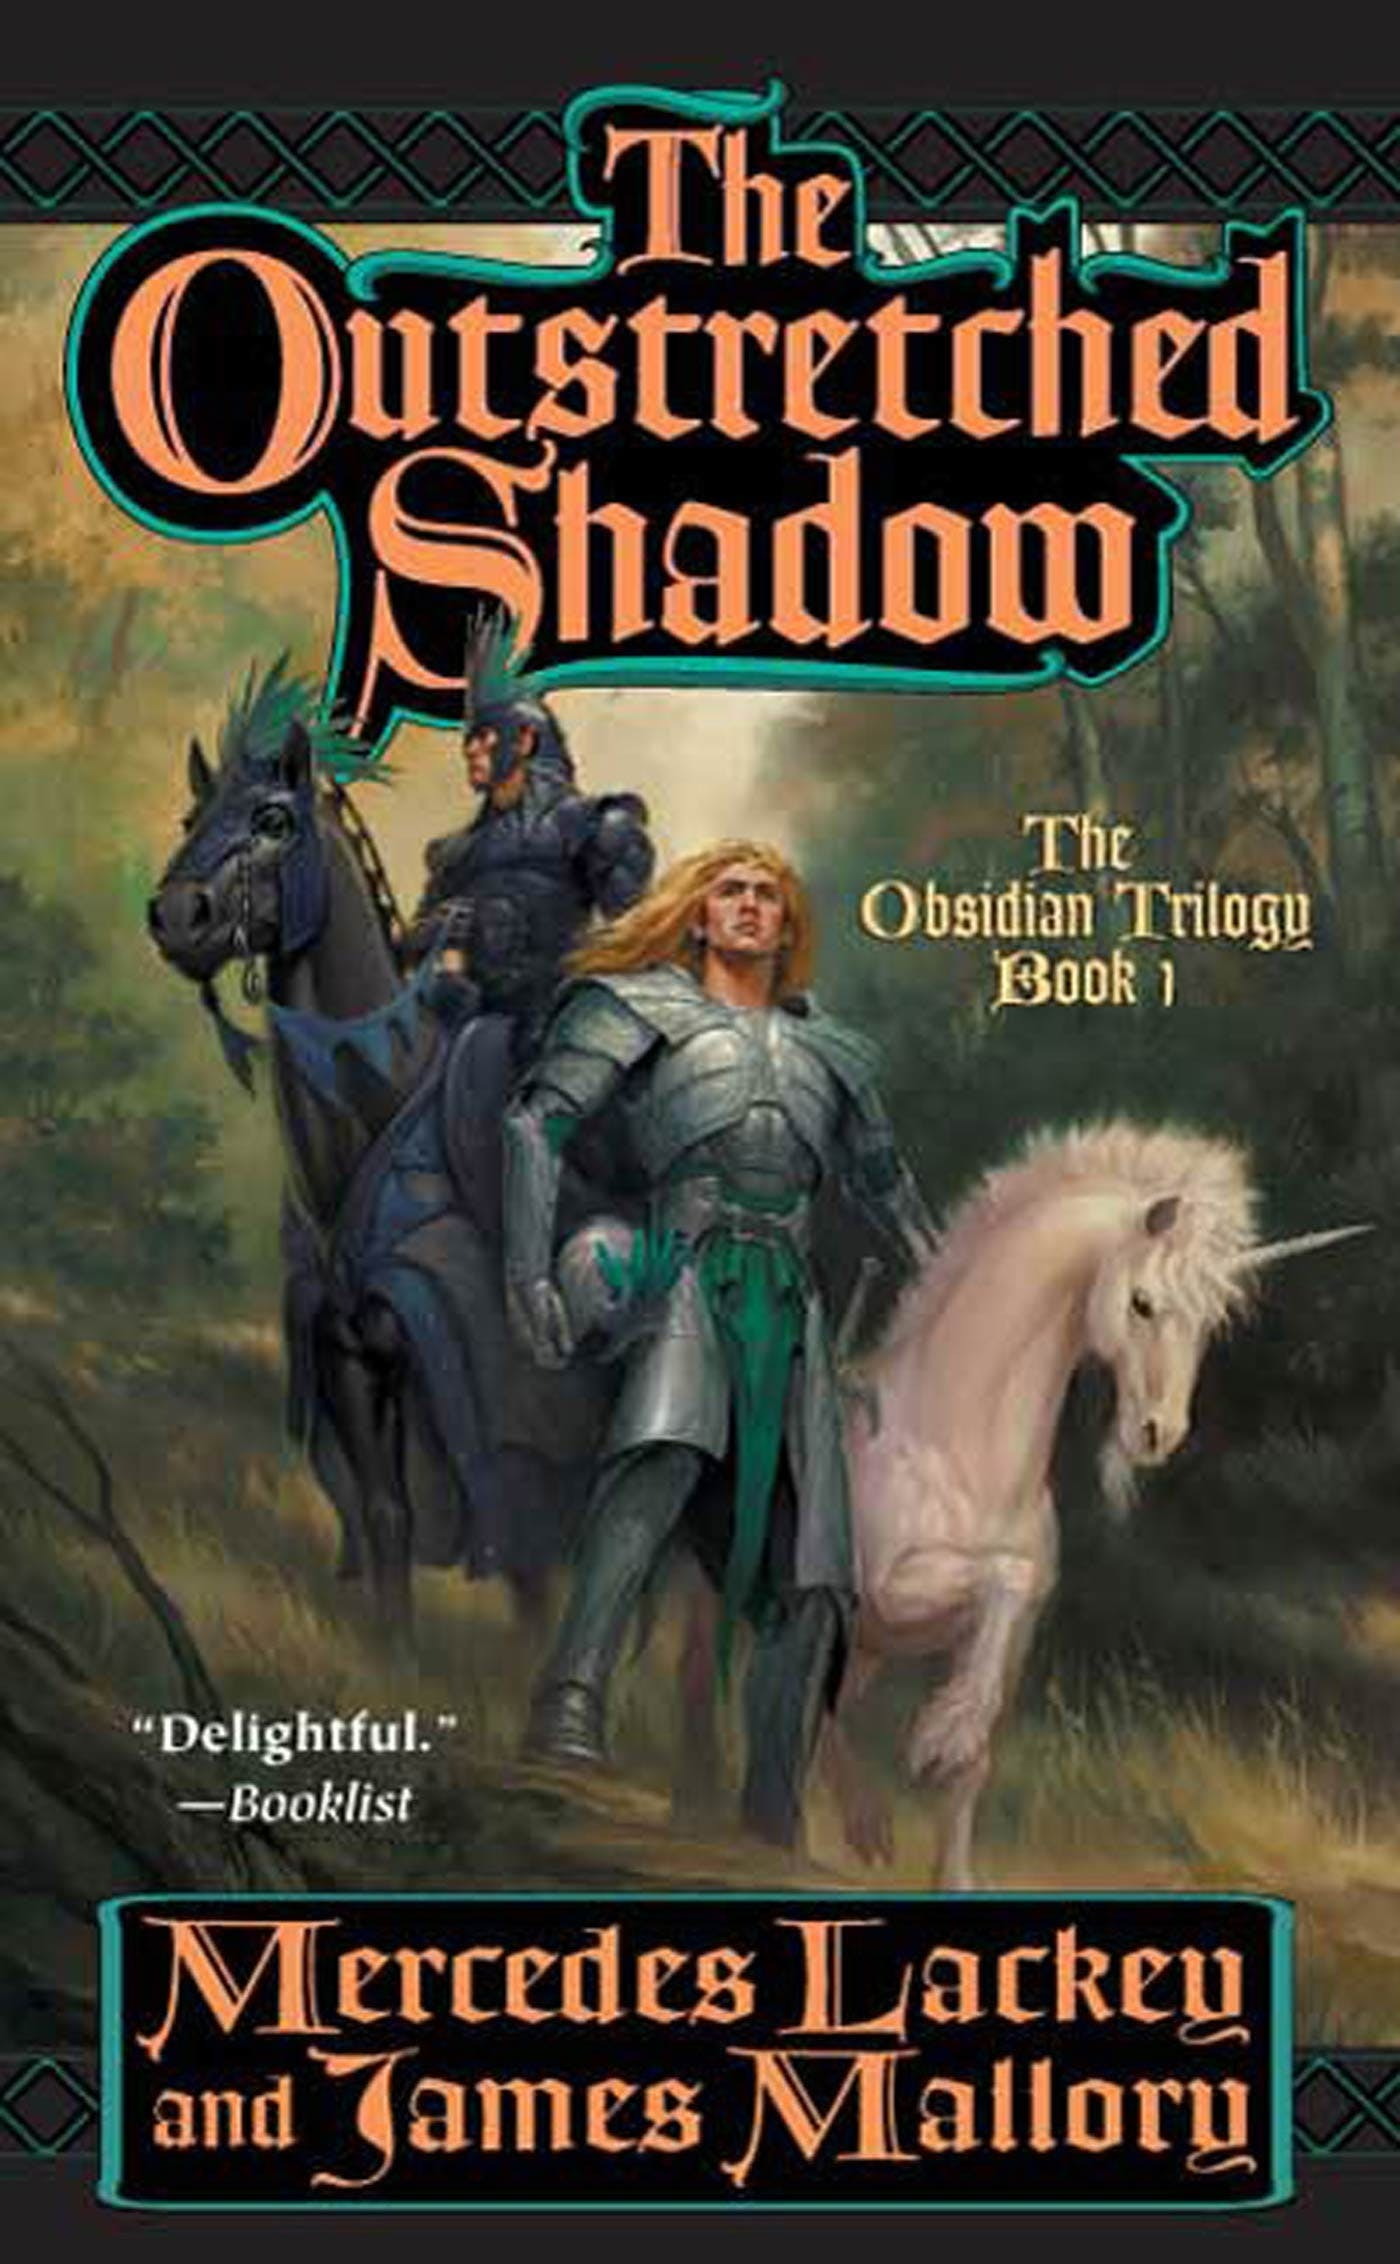 Image of The Outstretched Shadow